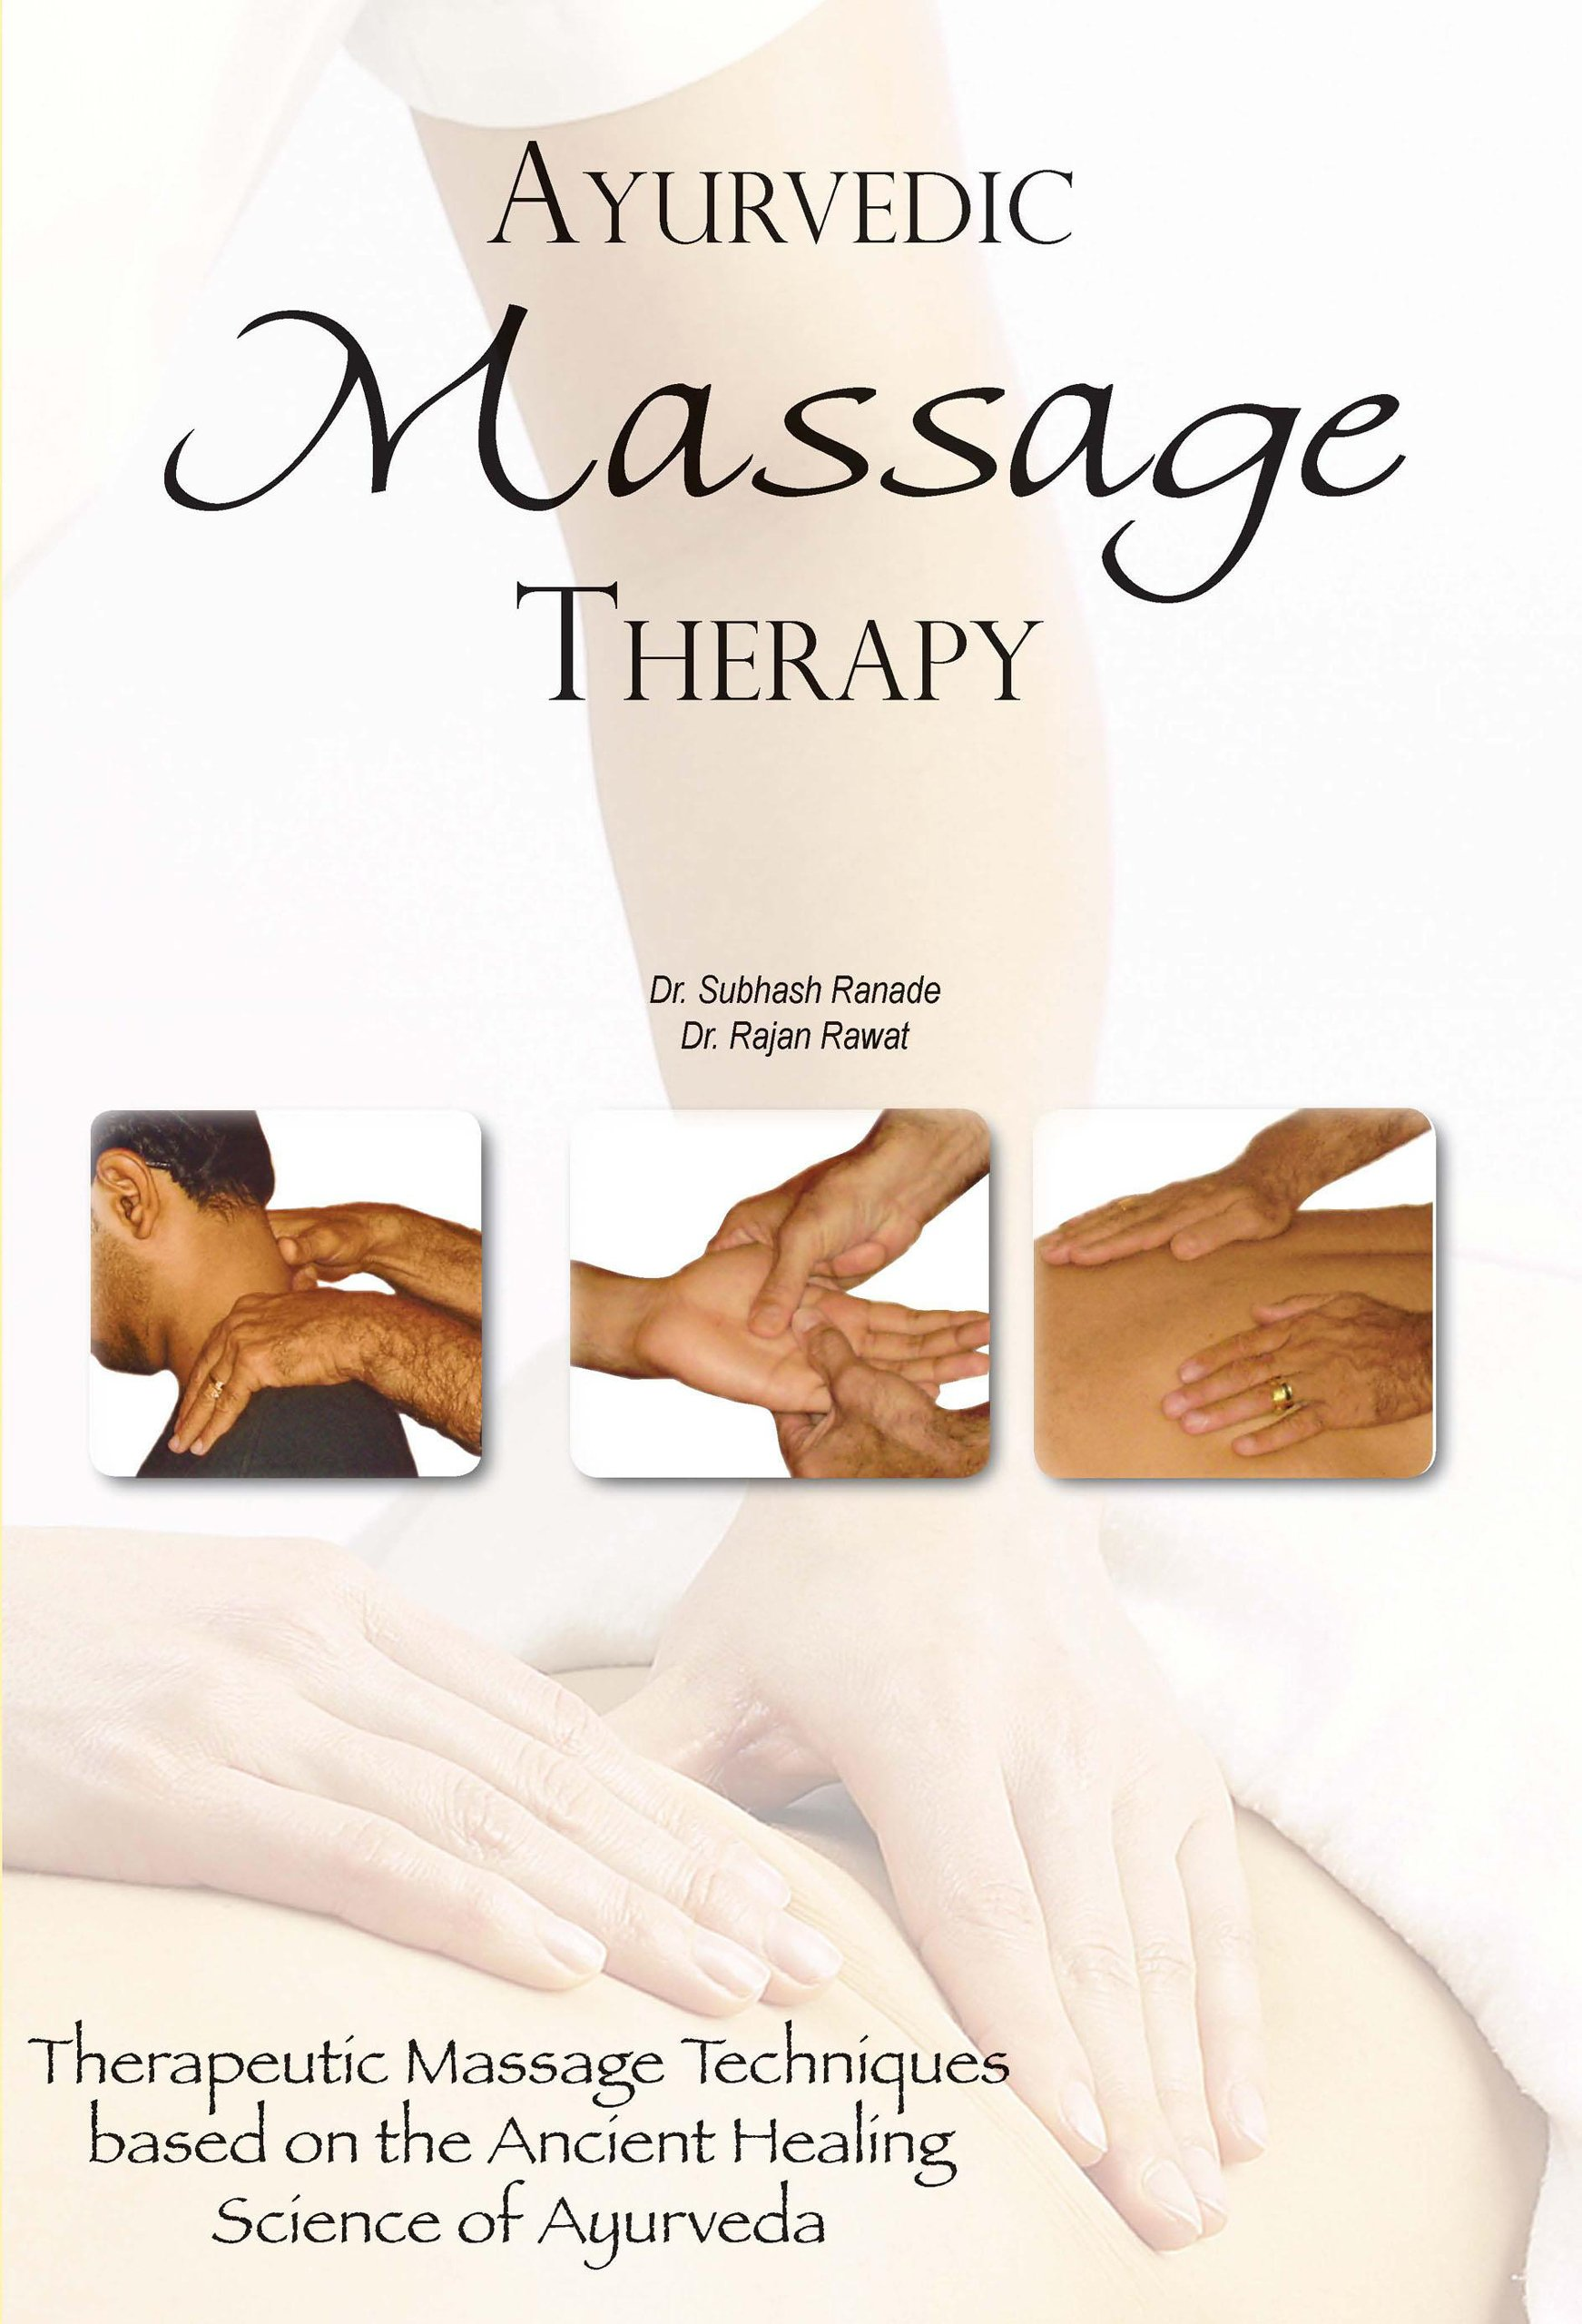 Ayurvedic Massage Therapy Therapeutic Techniques product image